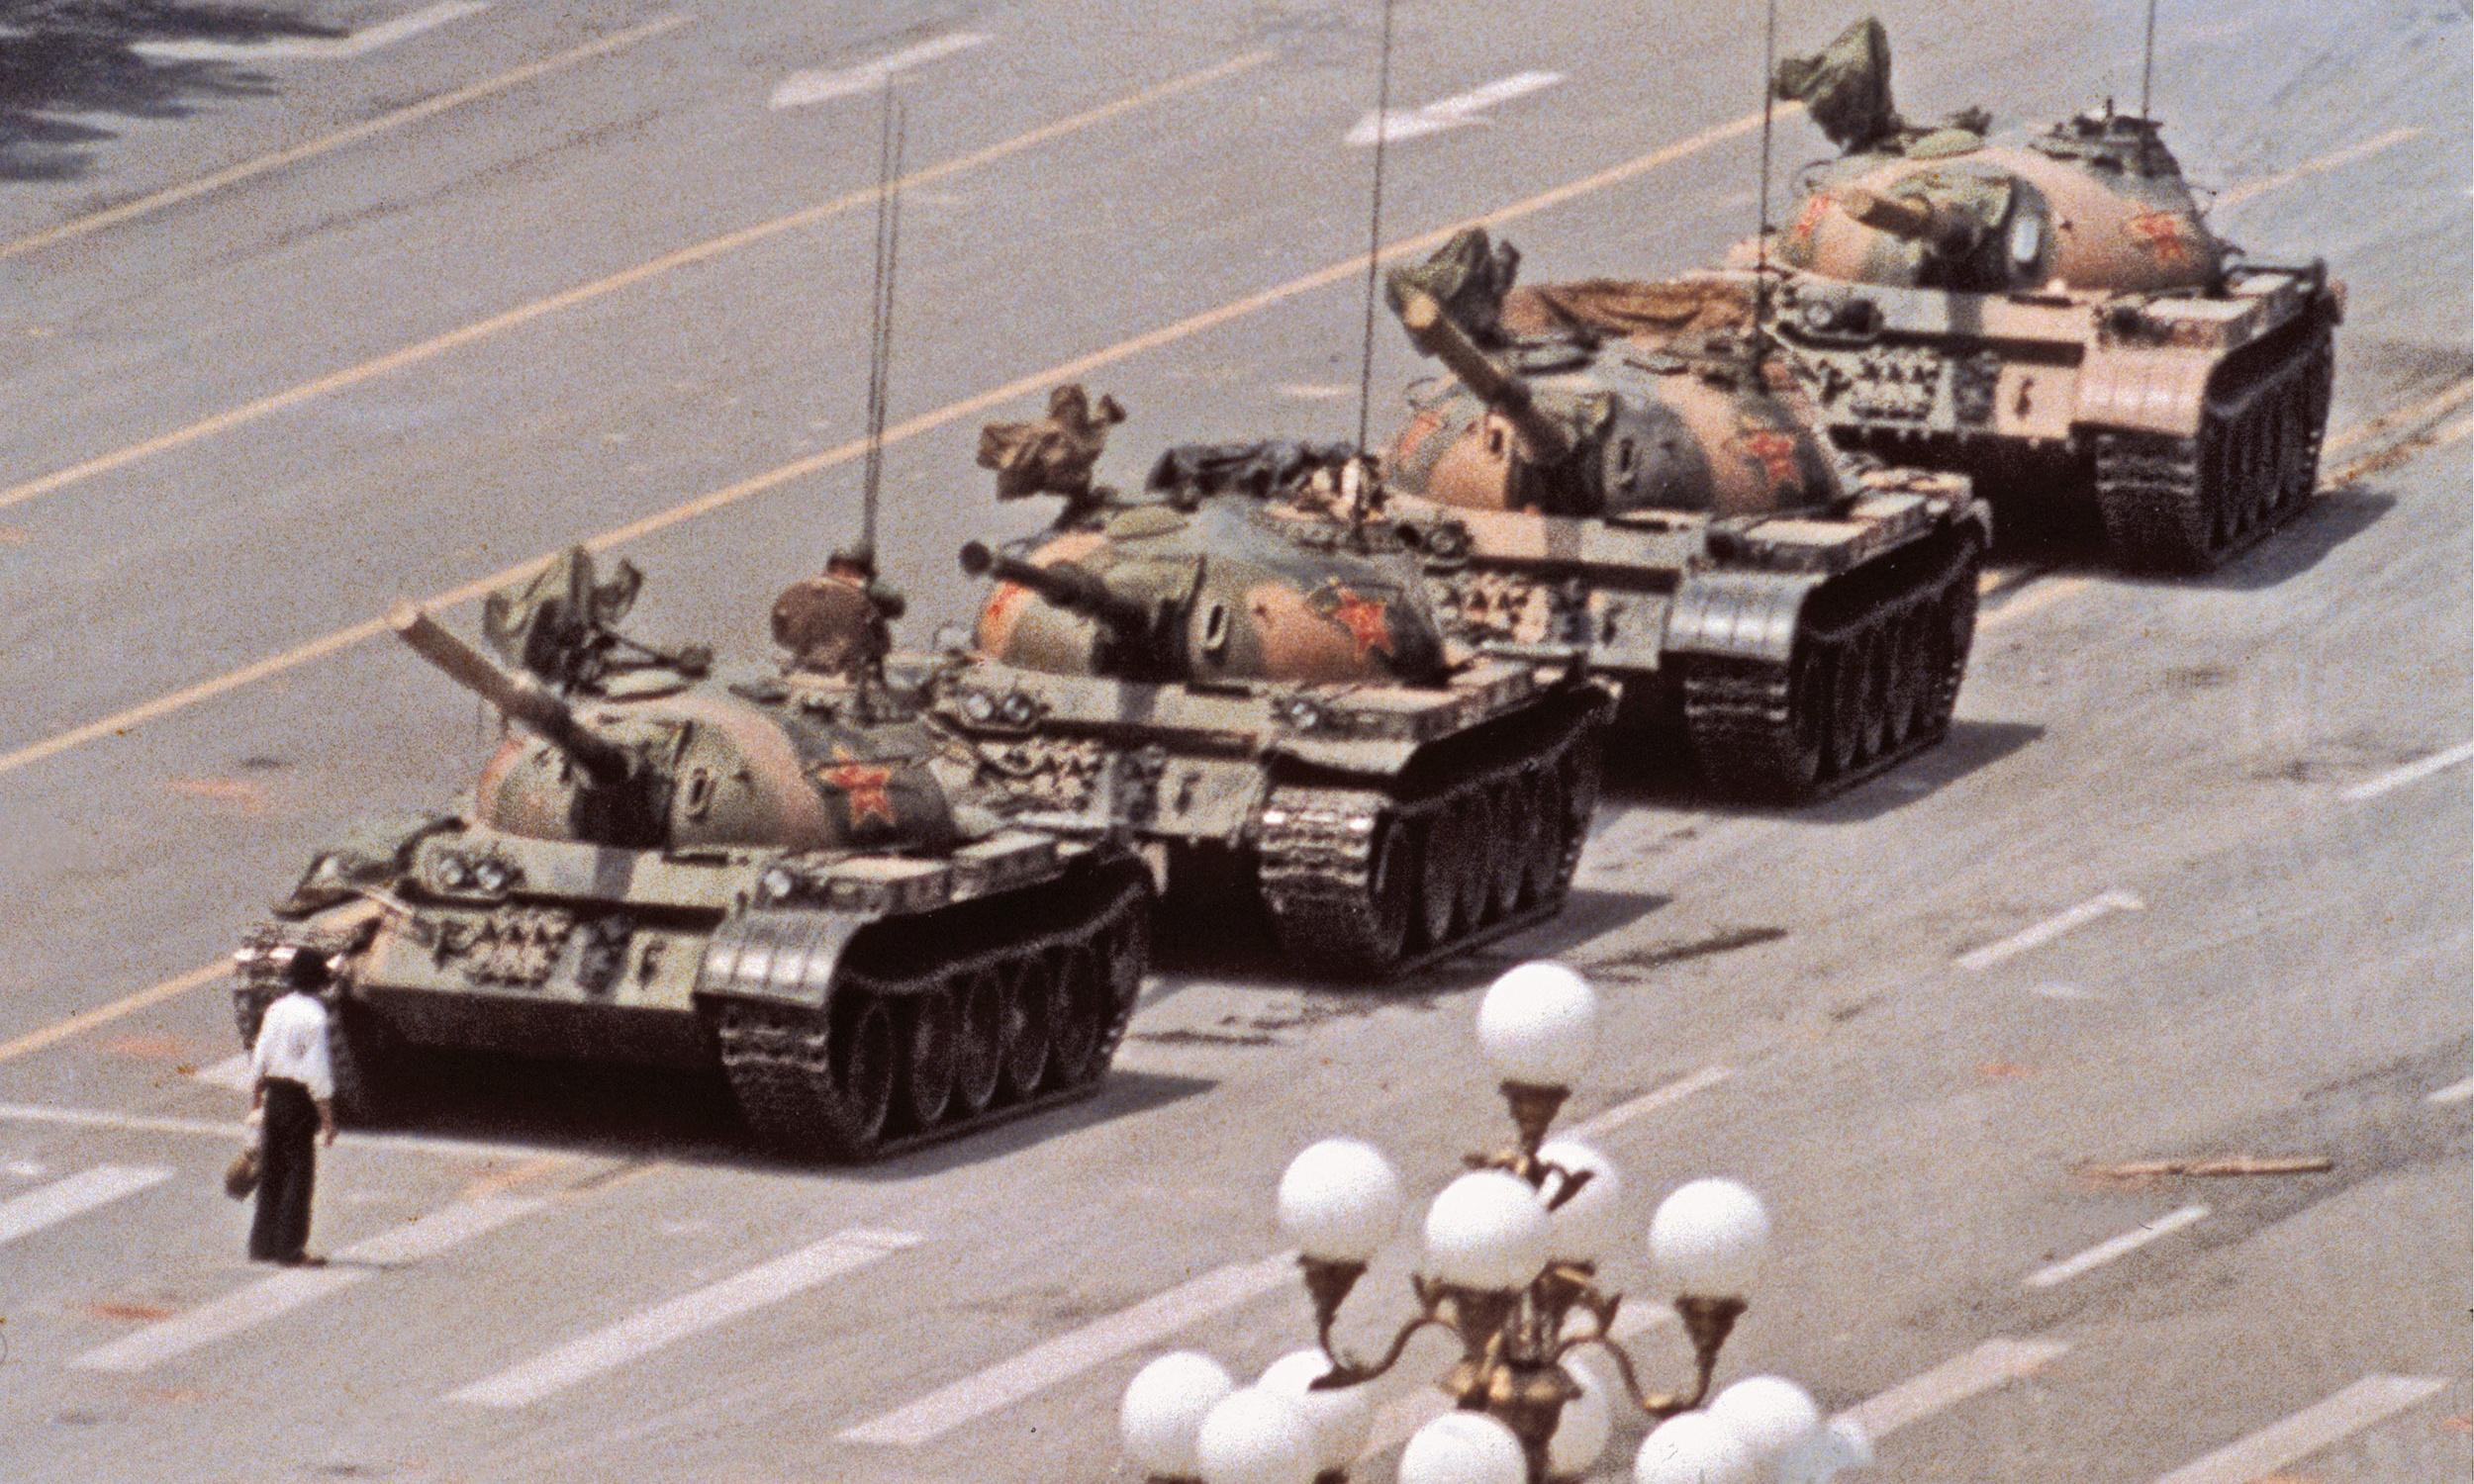 Thirty years on, the Tiananmen Square image that shocked the world